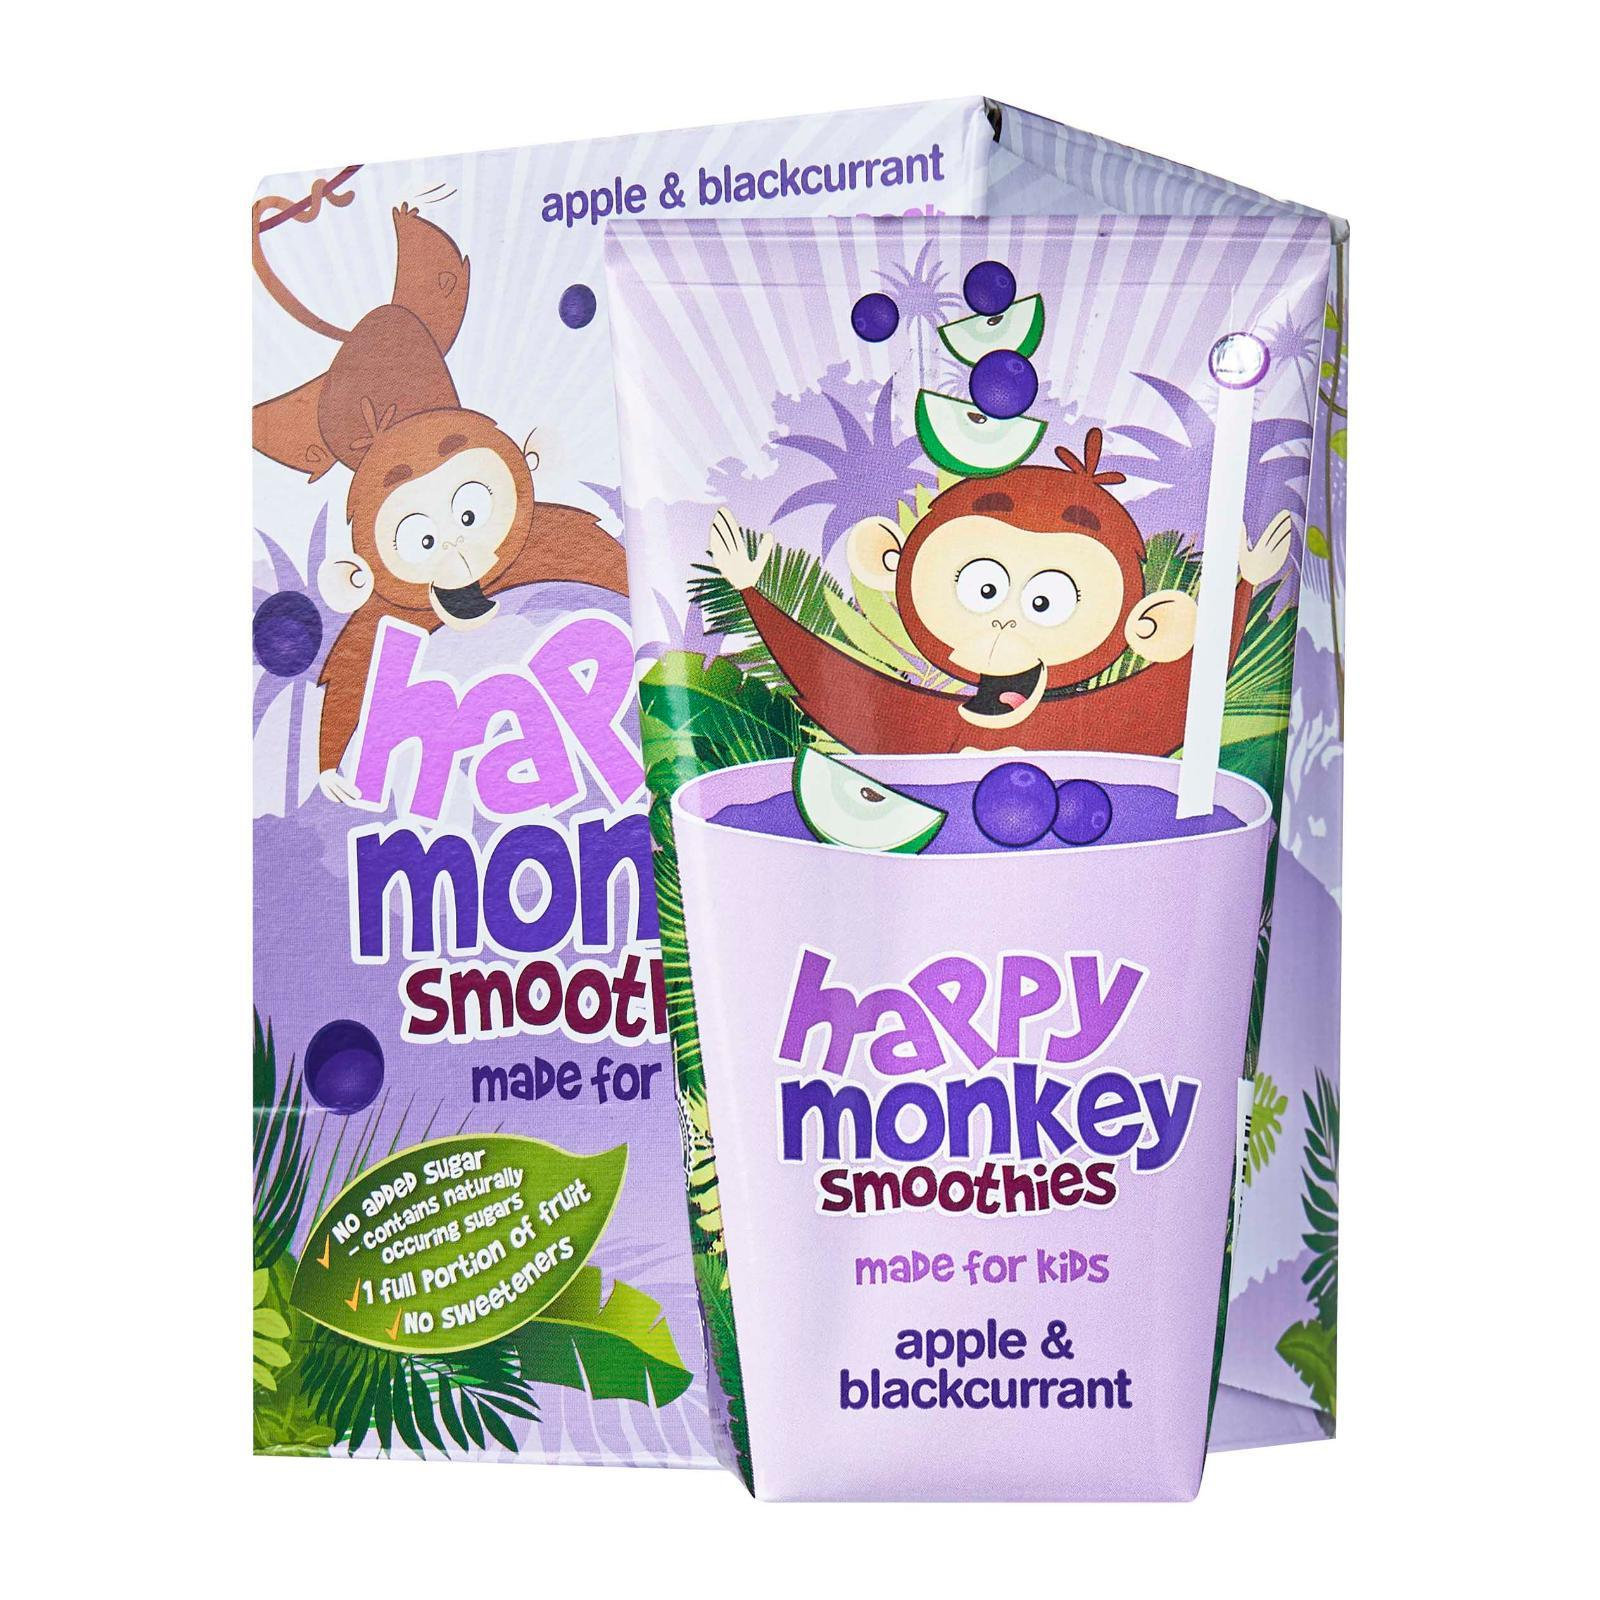 HAPPY MONKEY 100-Percent Fruit Smoothies - Made for Kids - Apple Blackcurrant x4